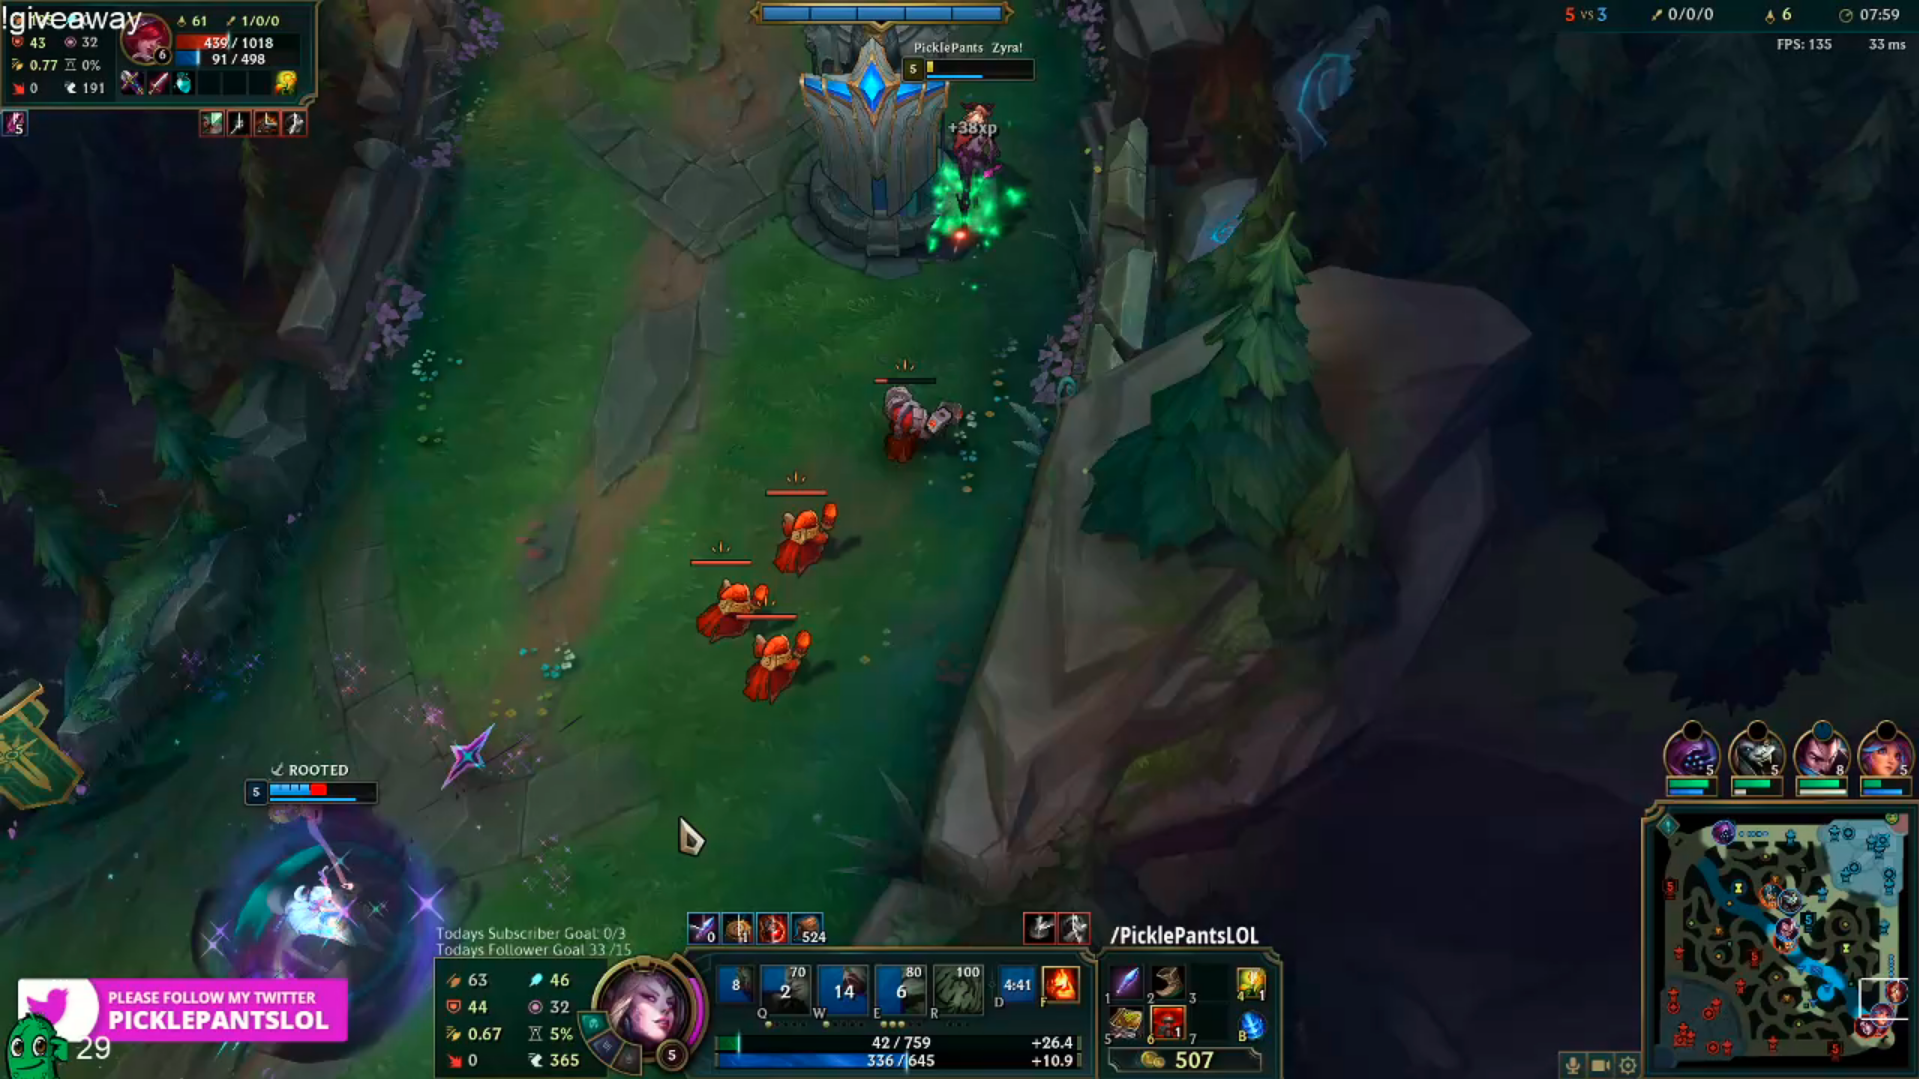 Zyra quest 8 minutes